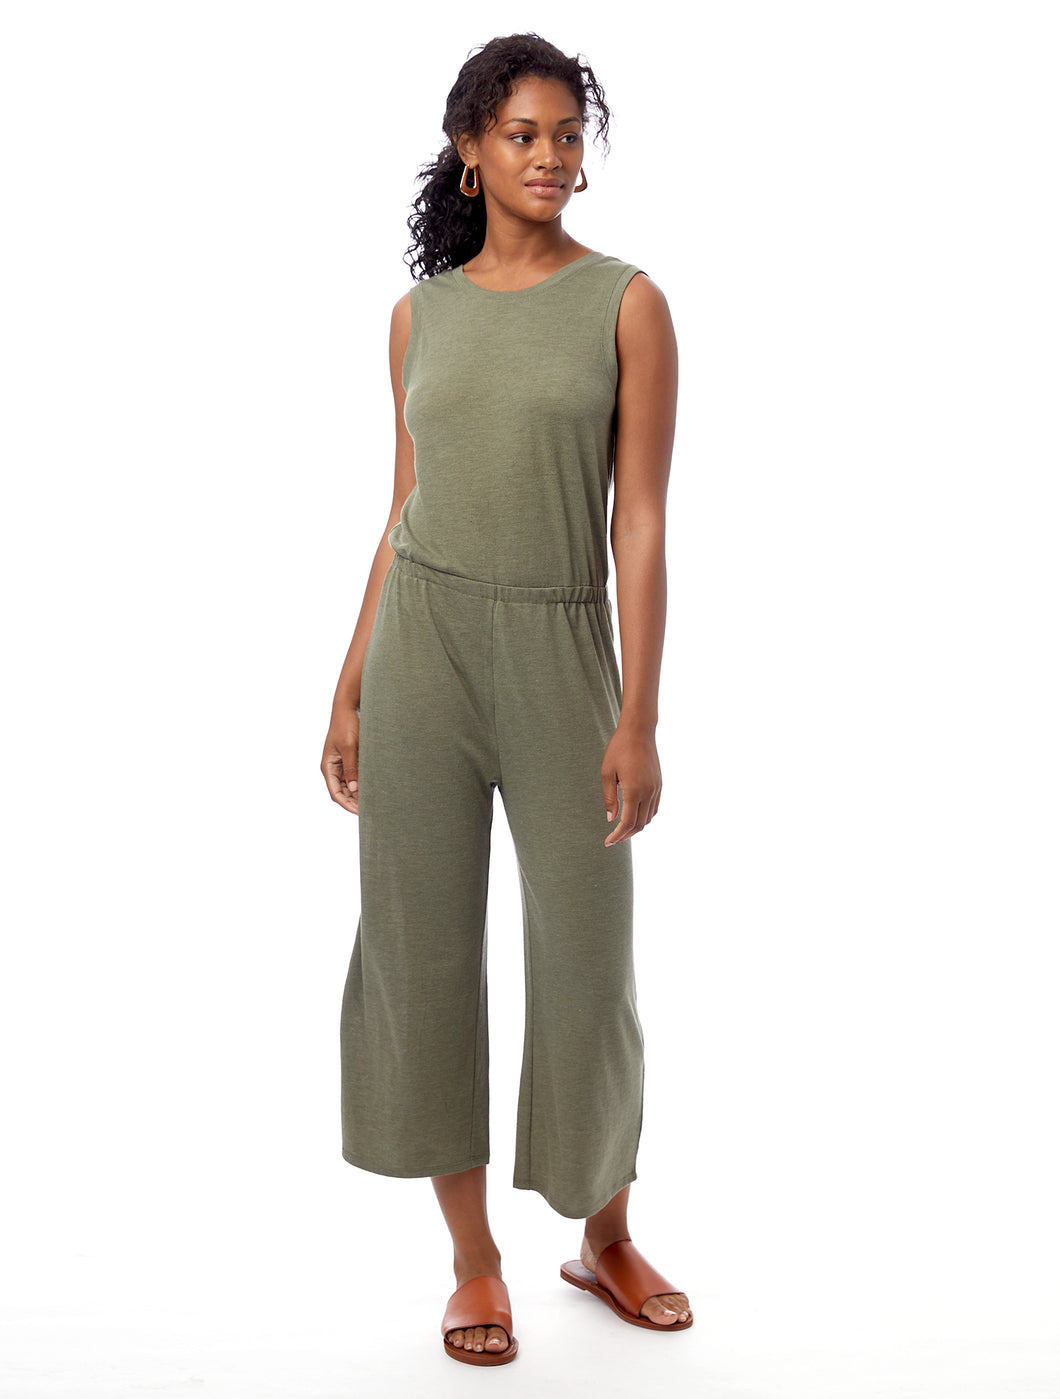 Alternative Sleepless Cropped Jump Suit Army Green